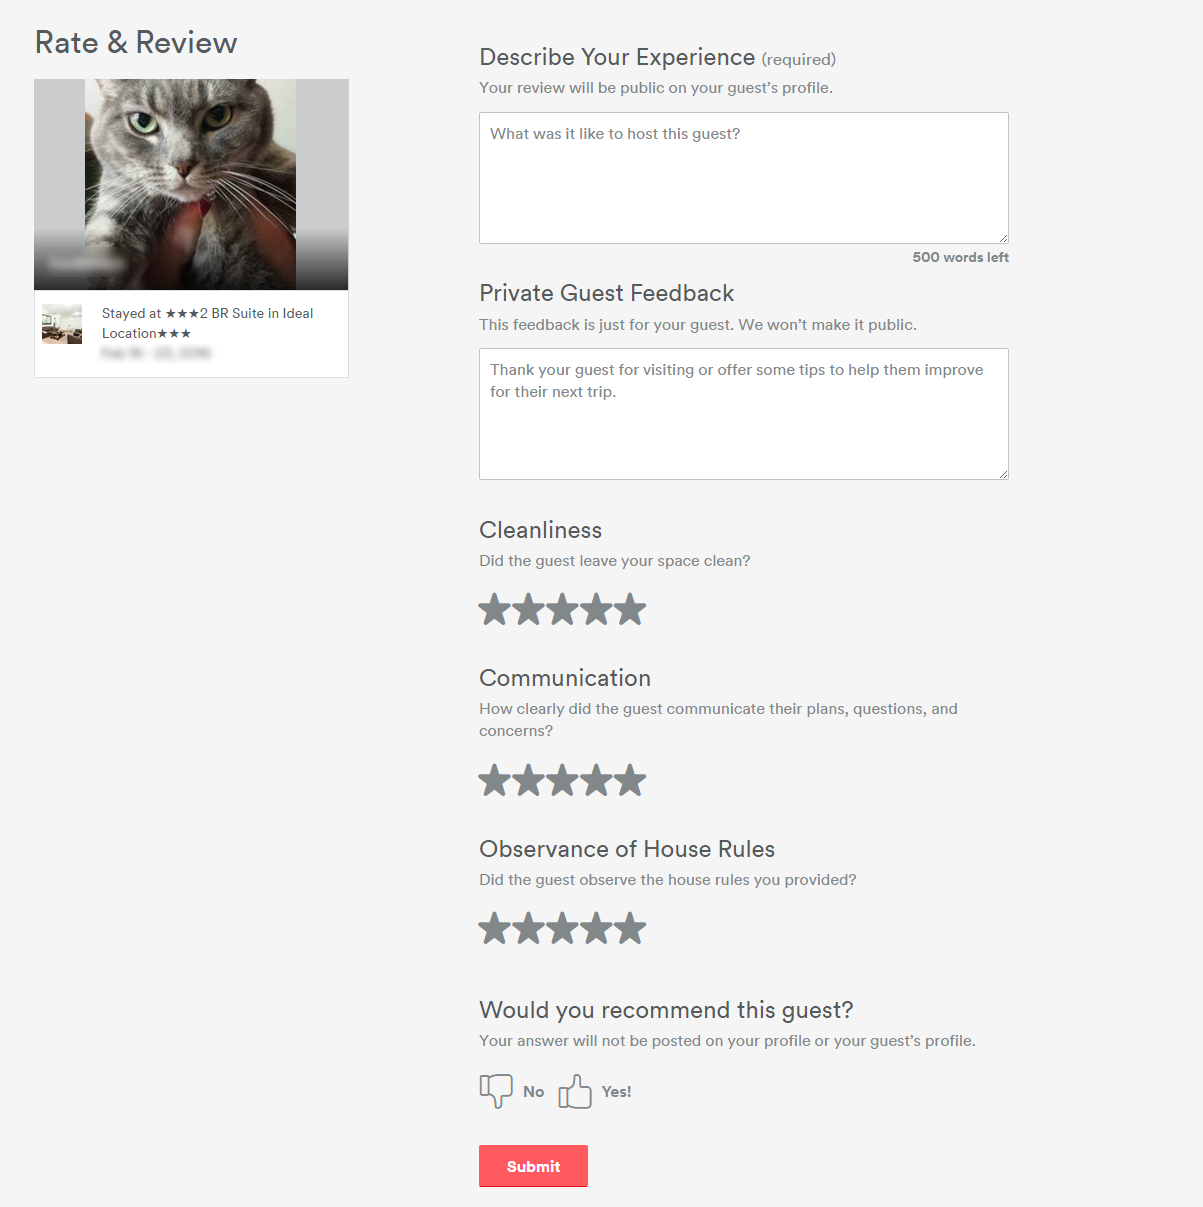 all about reviews a community help guide airbnb community after you submit your review you will be taken to a page to provide private feedback to airbnb enter feedback if you wish and then click submit